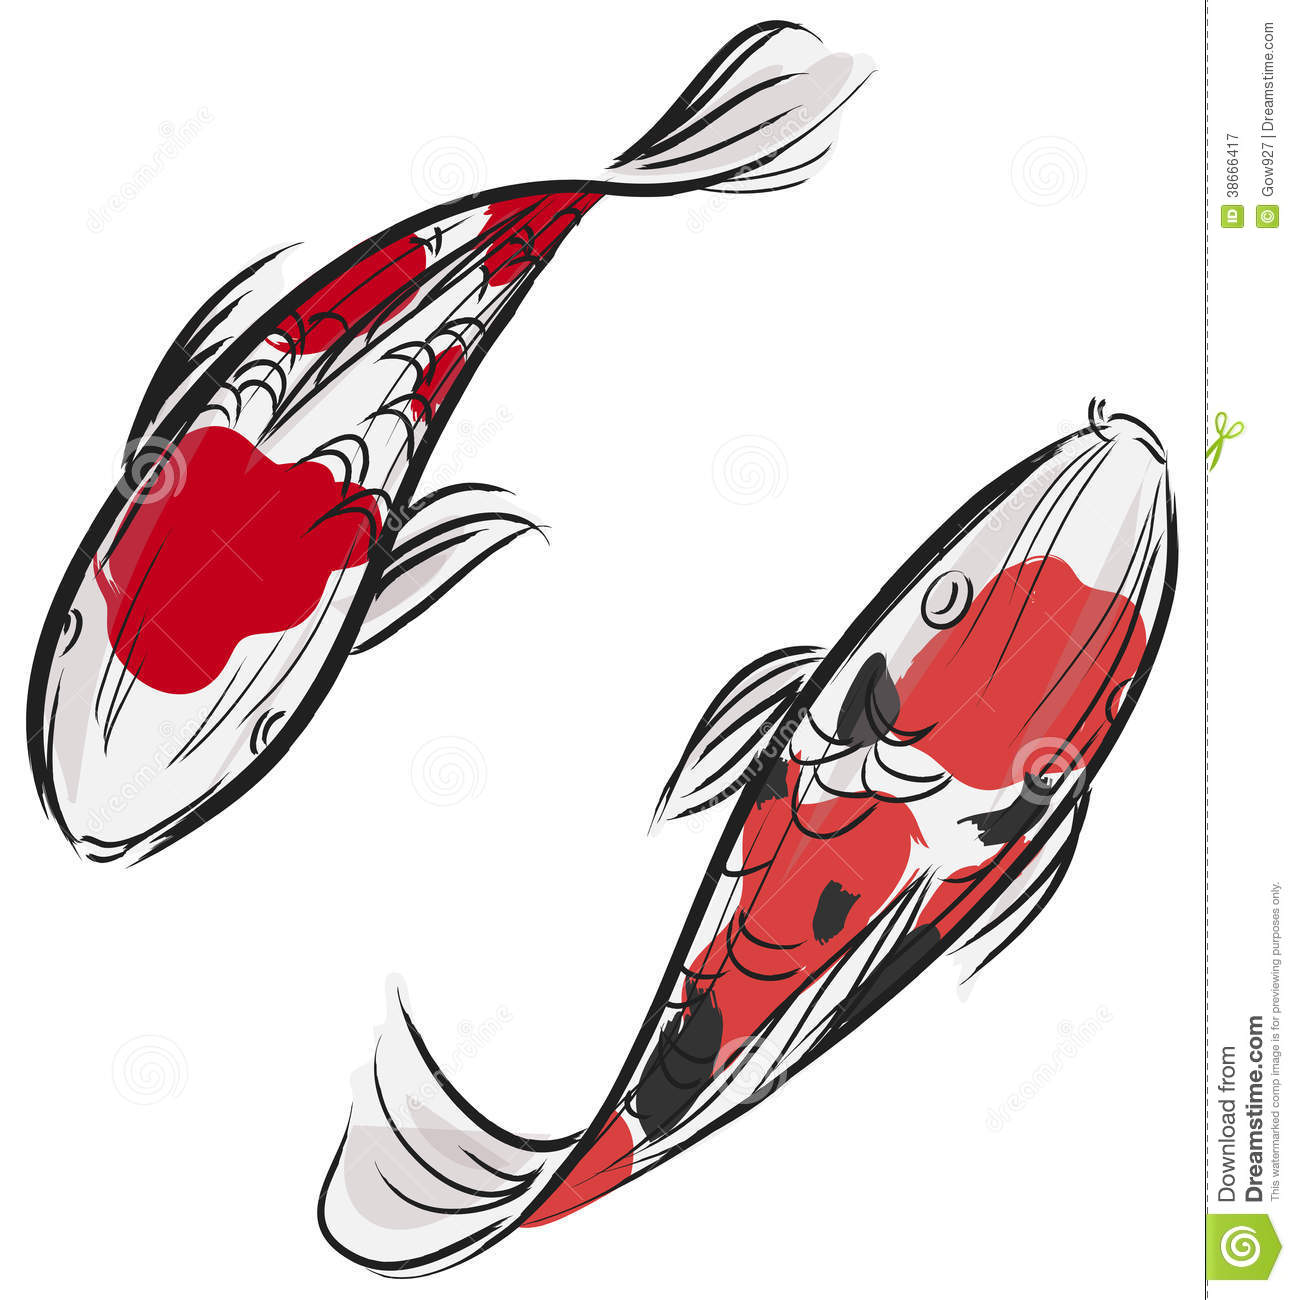 Artisic painting of japanese carp fish koi stock vector for Koi fish vector